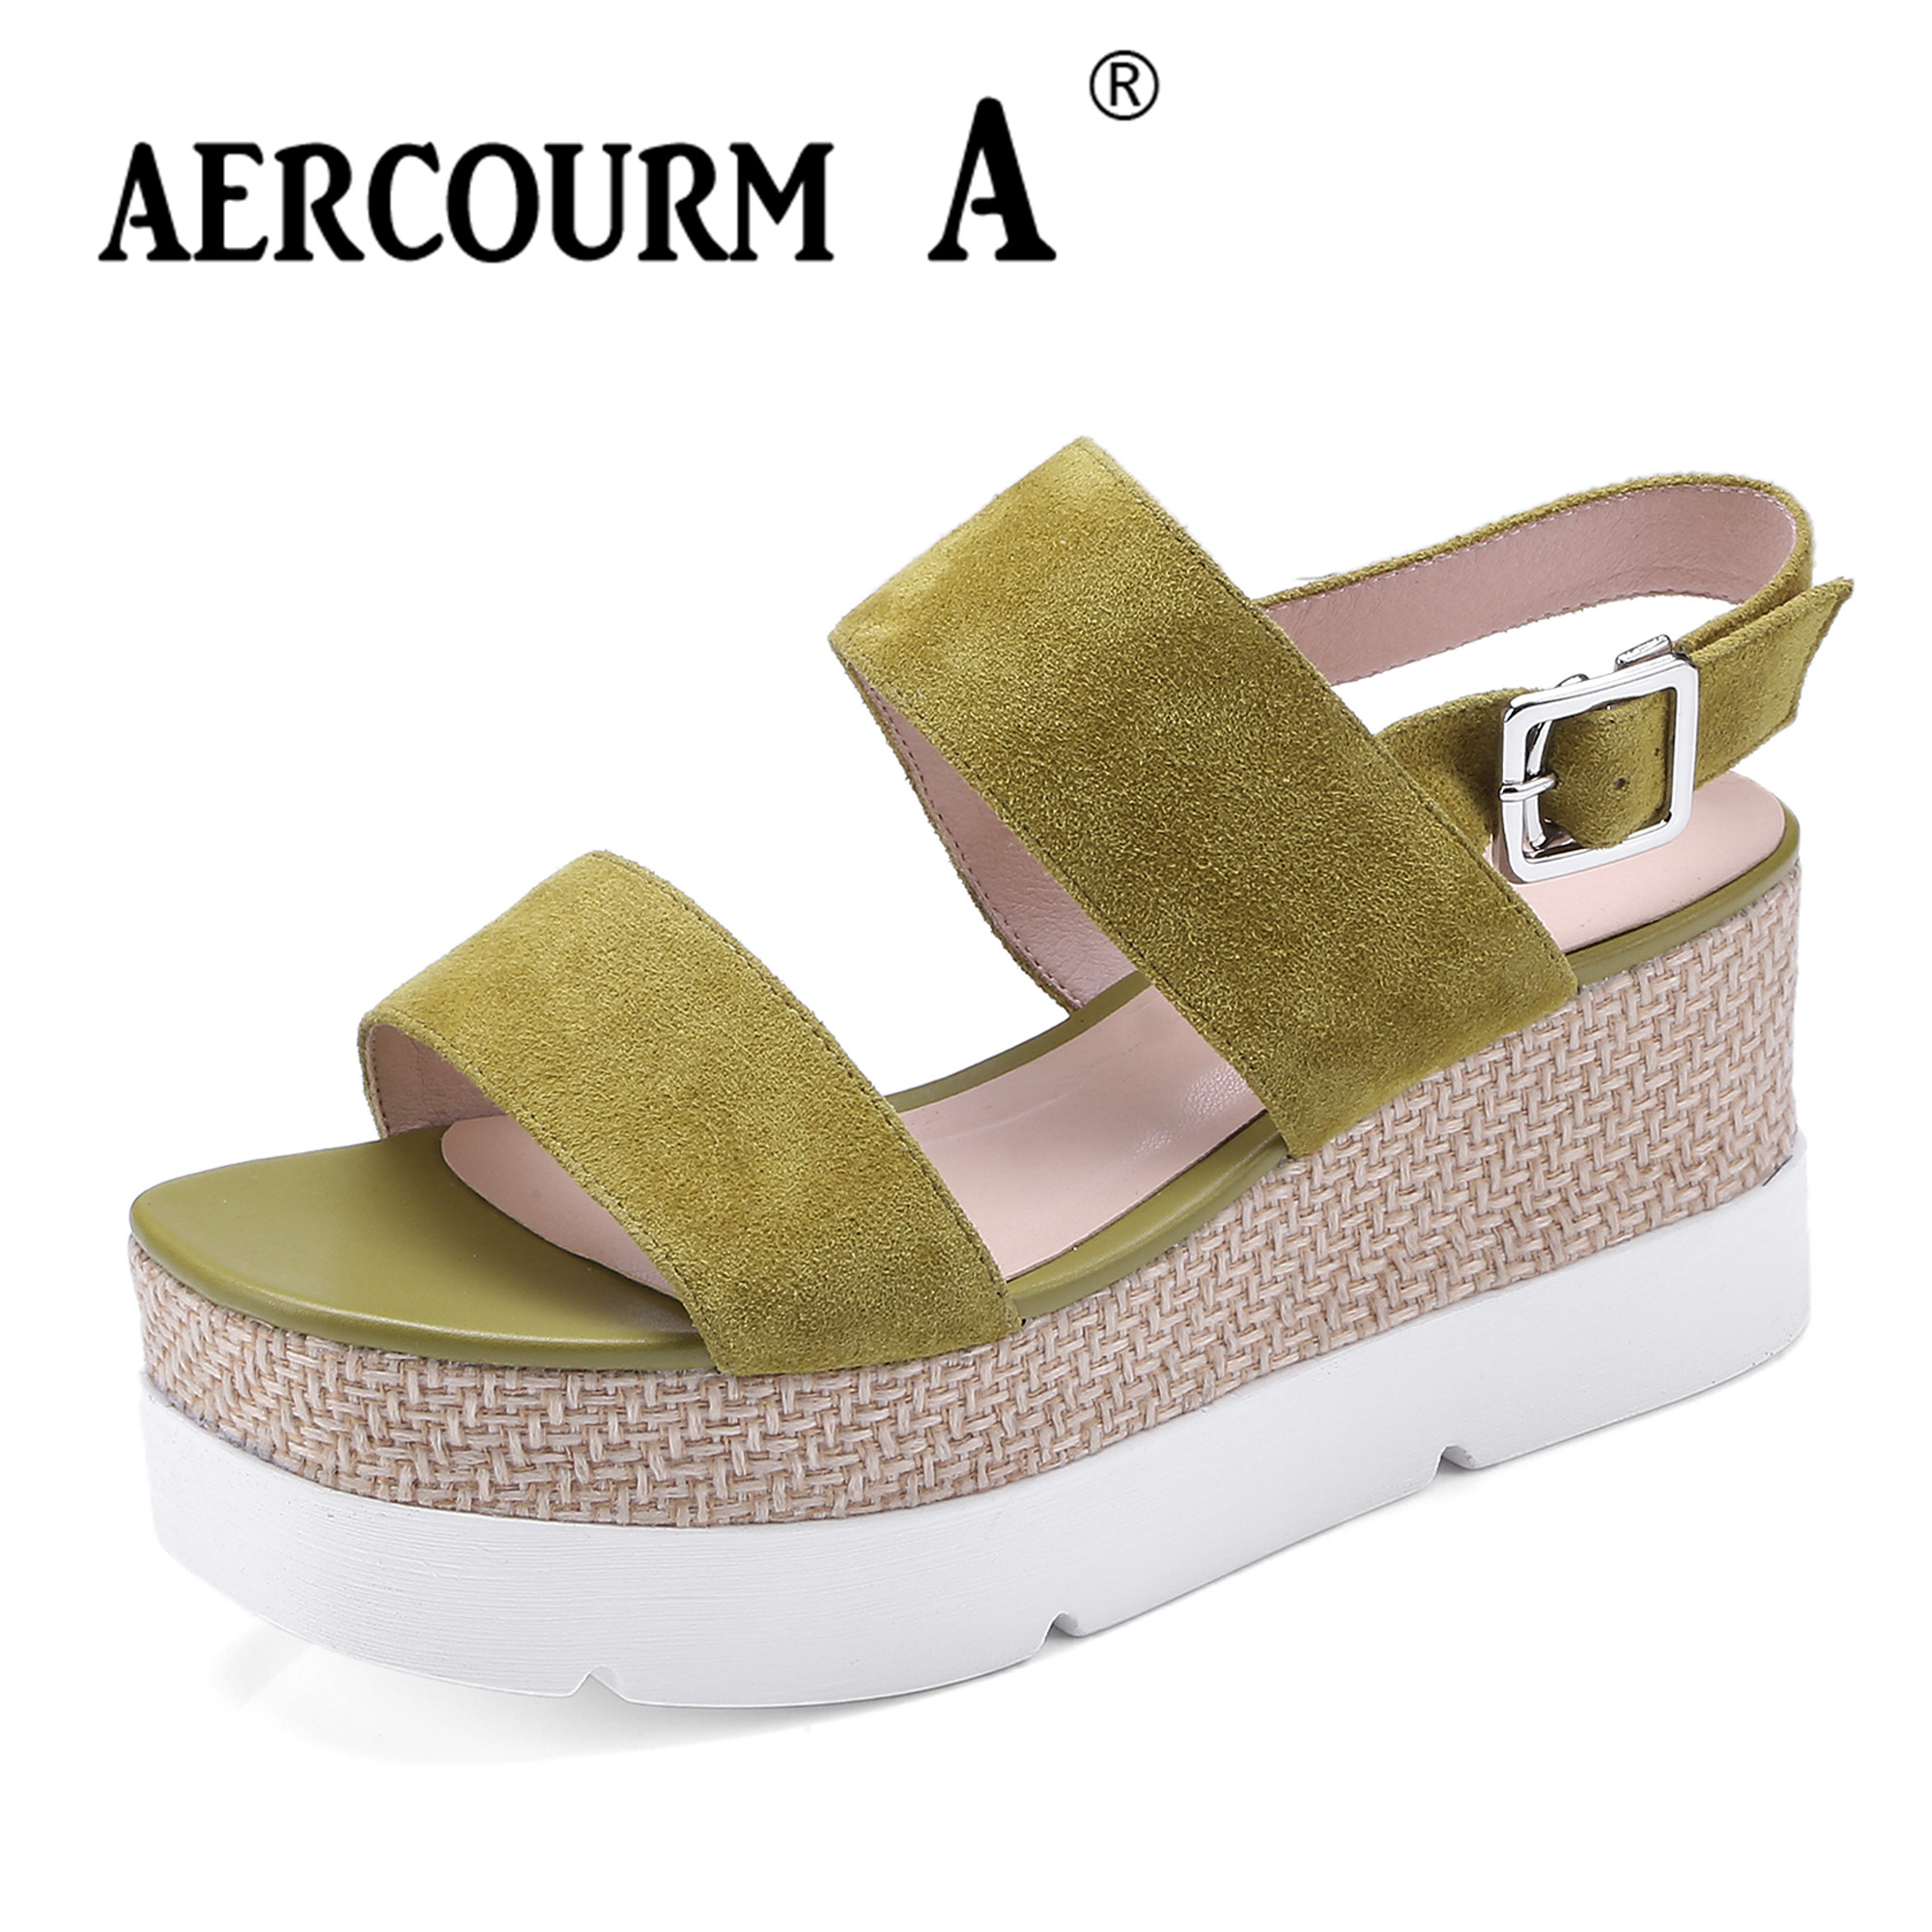 Aercourm A Women Wedges Heel Sandals Female Genuine Leather Shoes Lady Buckle Solid Summer Shoes 2018 New Waterproof Shoes DT253 aercourm a 2018 women black fashion shoes female bright genuine leather shoes pearl high heel pumps bow brand new shoes z333